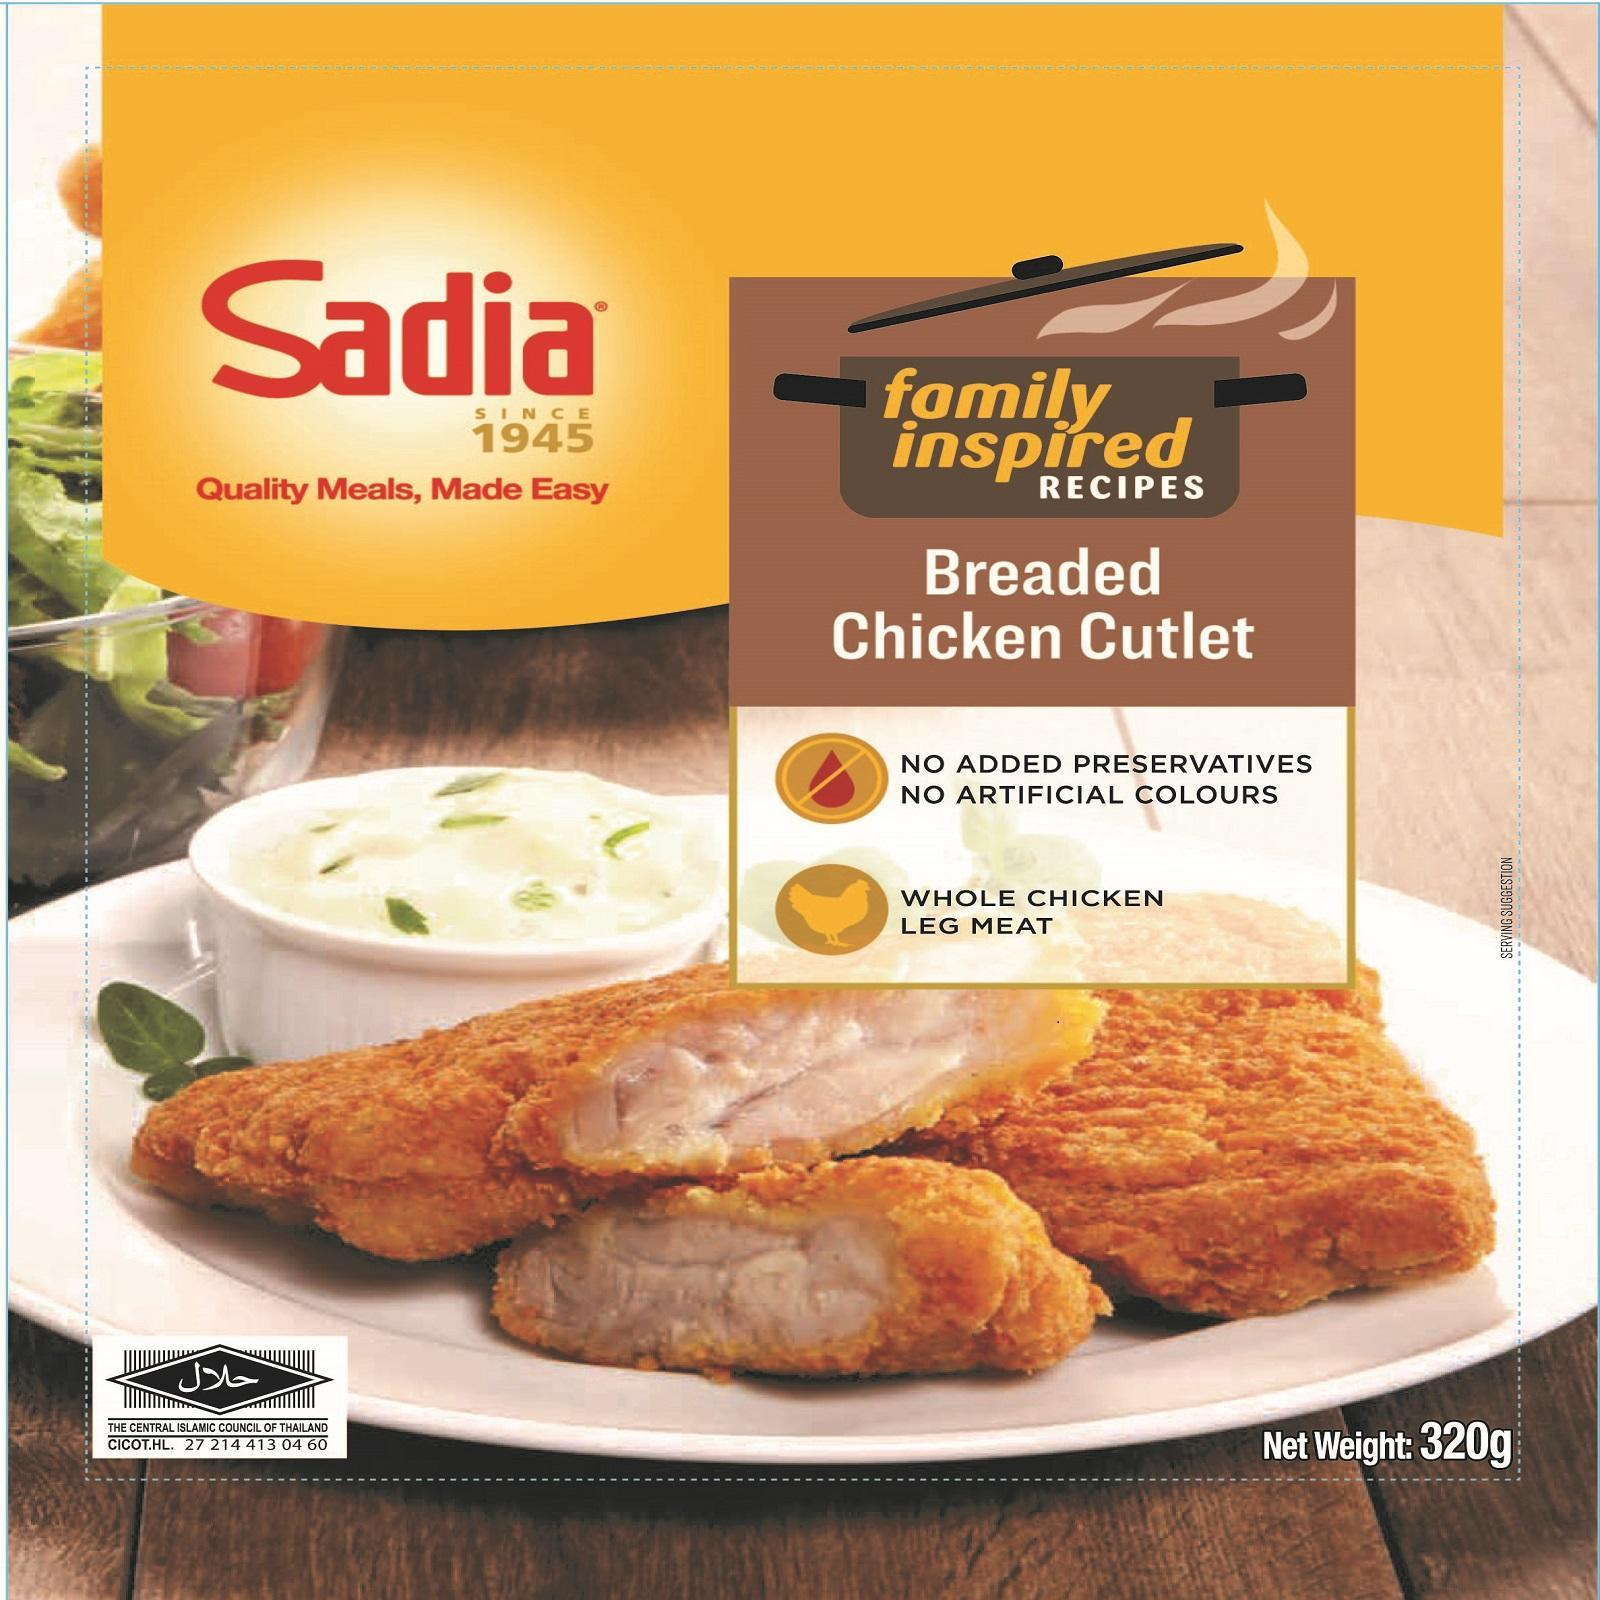 Sadia Breaded Chicken Cutlet - Frozen and Fully Cooked